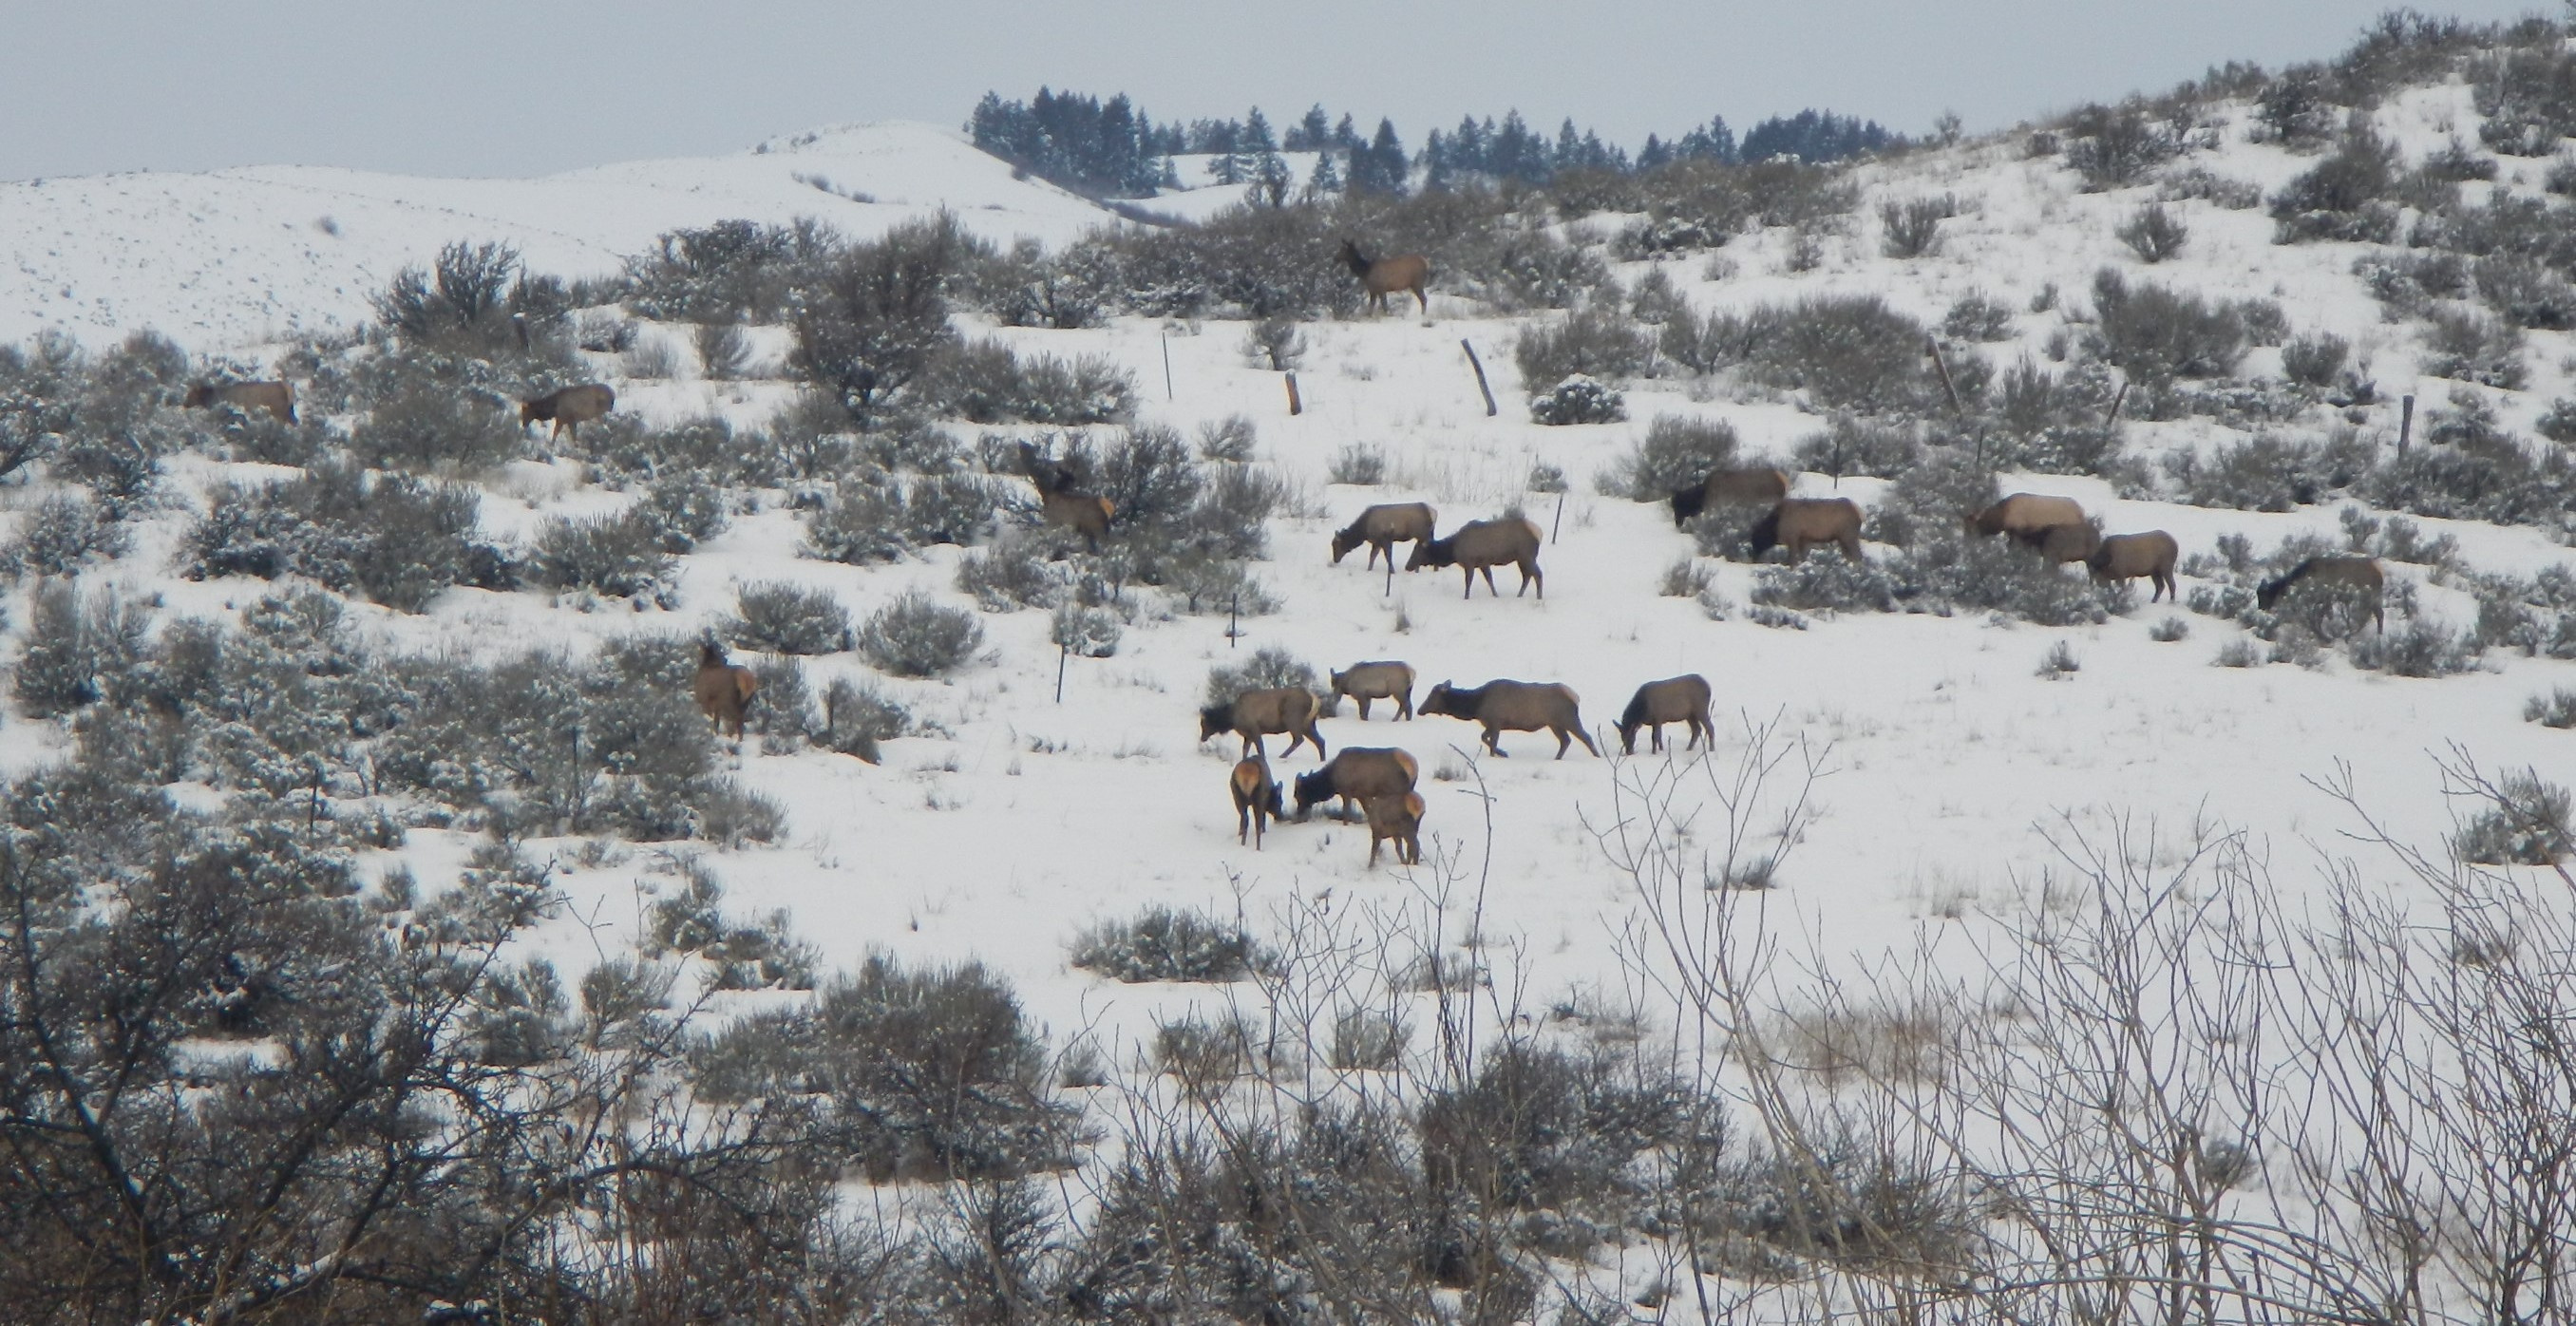 Elk at the Boise River WMA